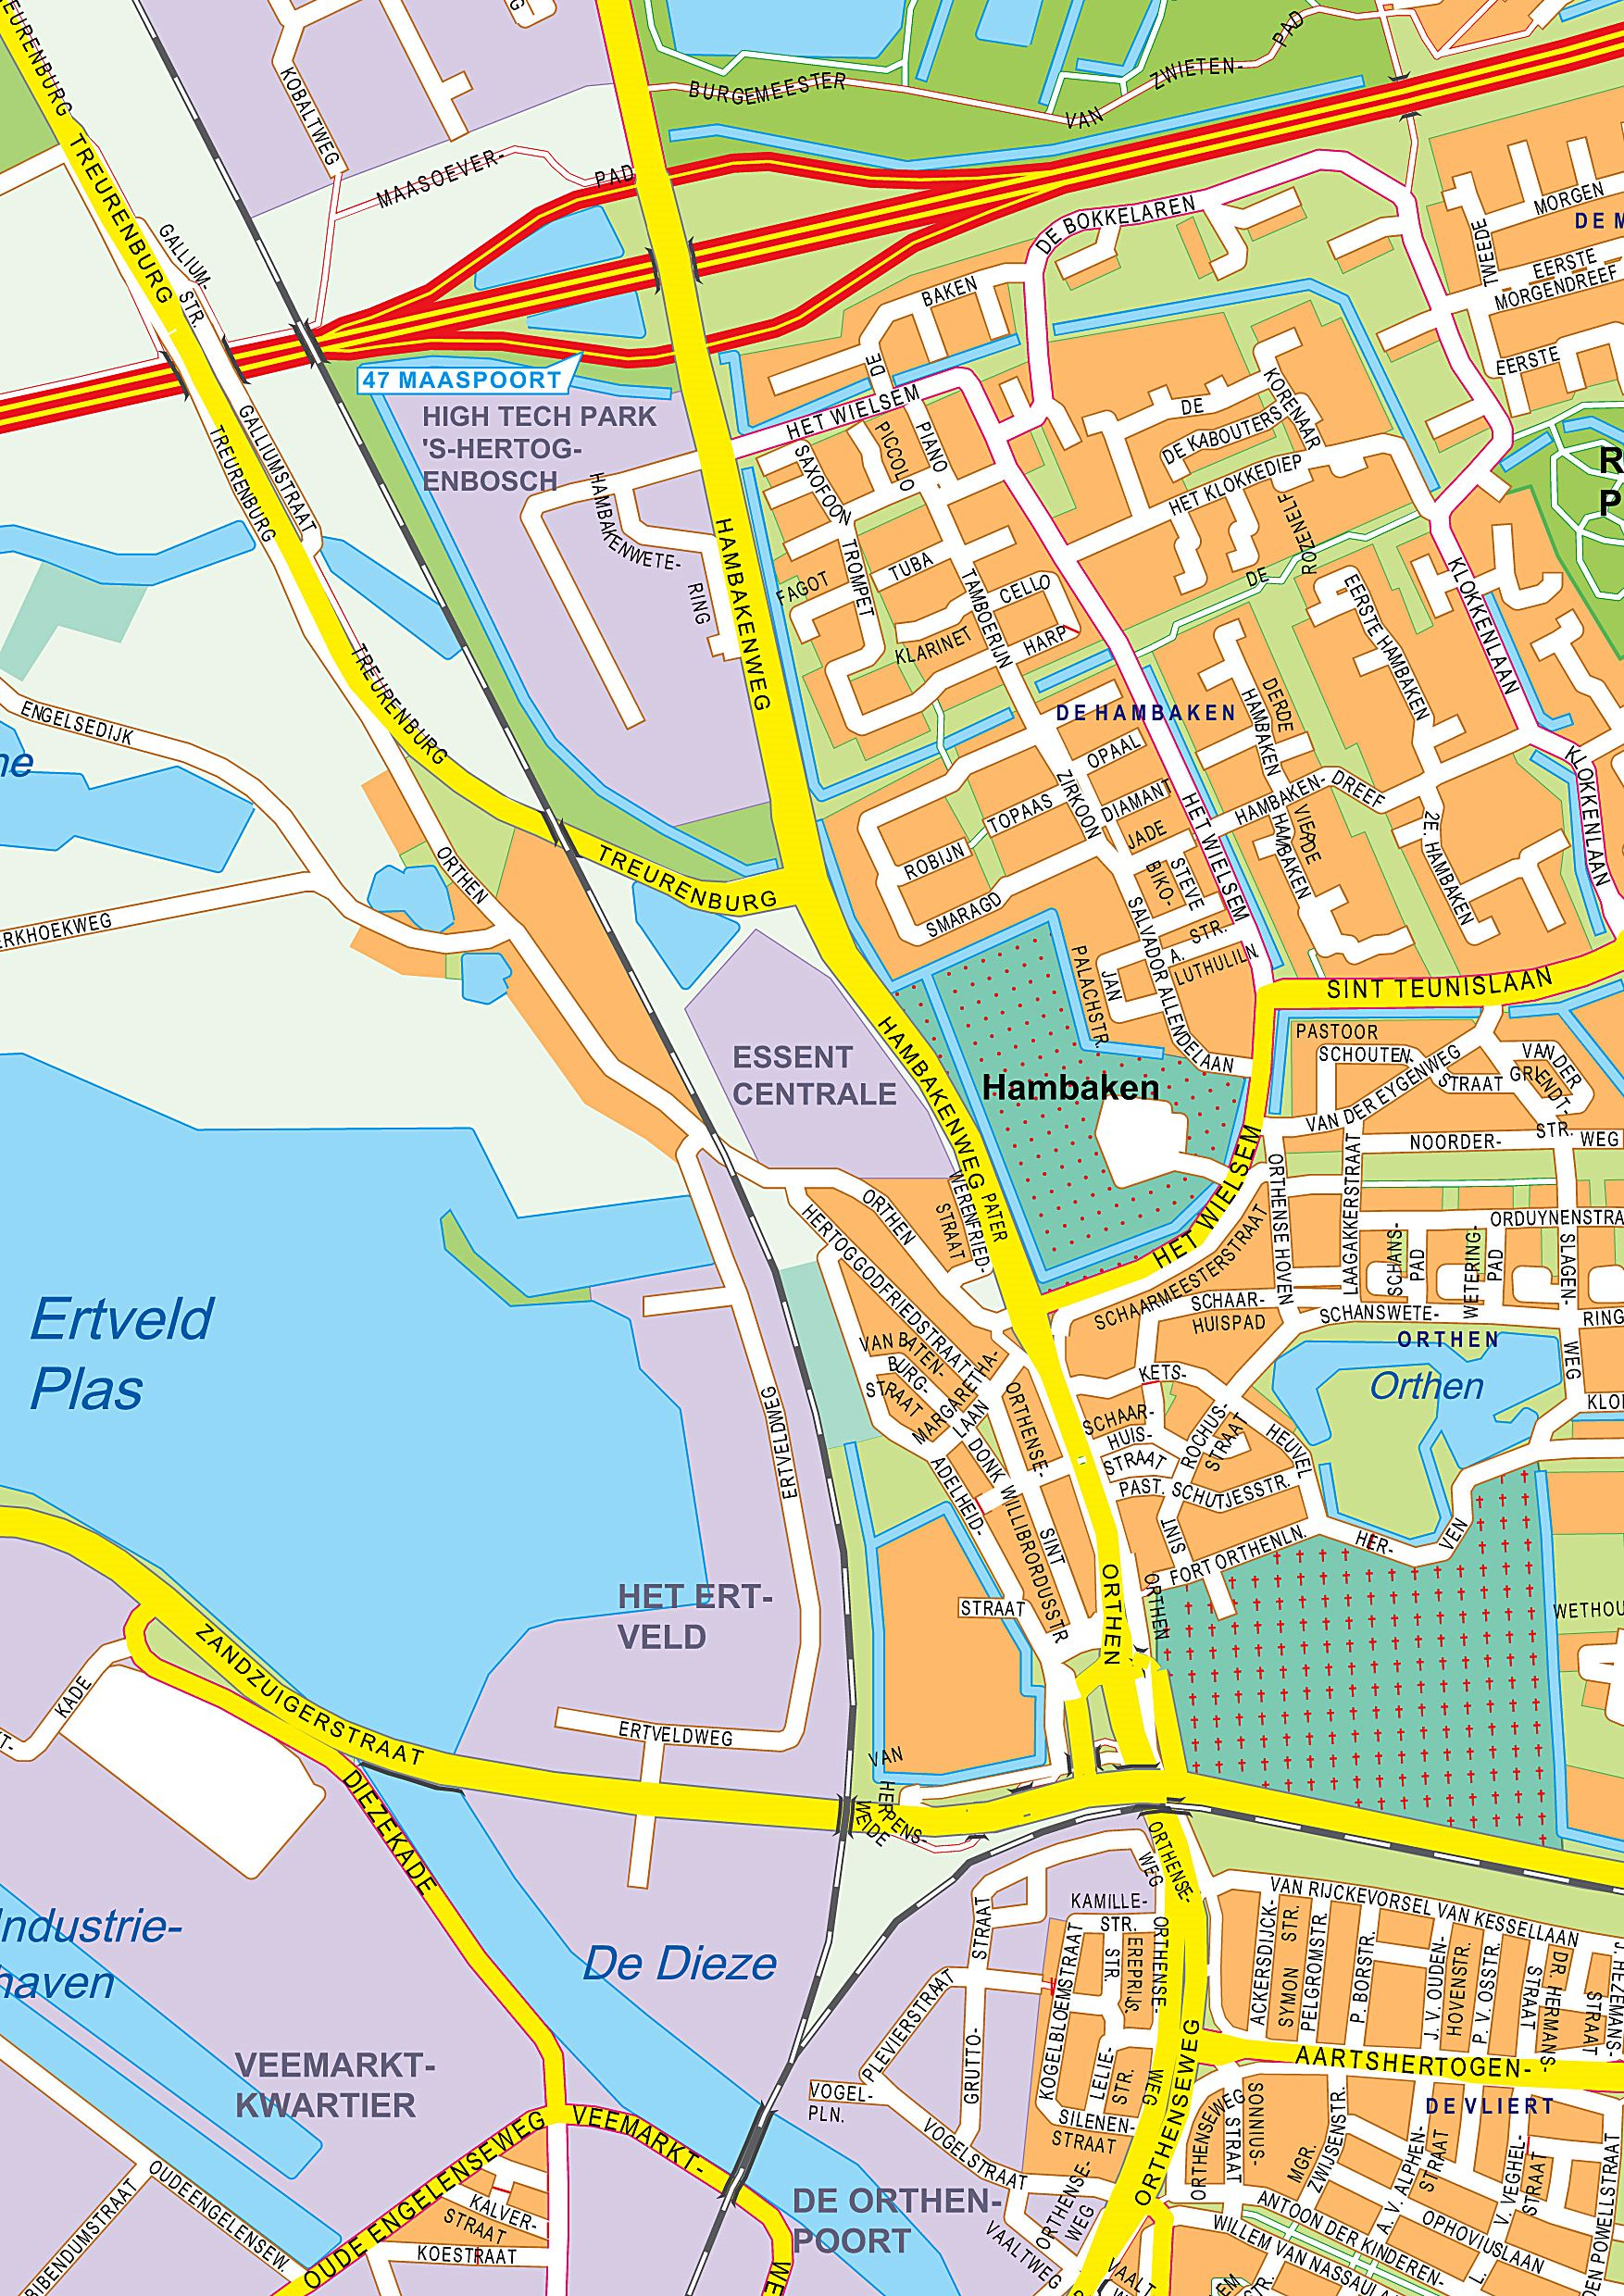 Large Den Bosch Maps for Free Download and Print | High ...